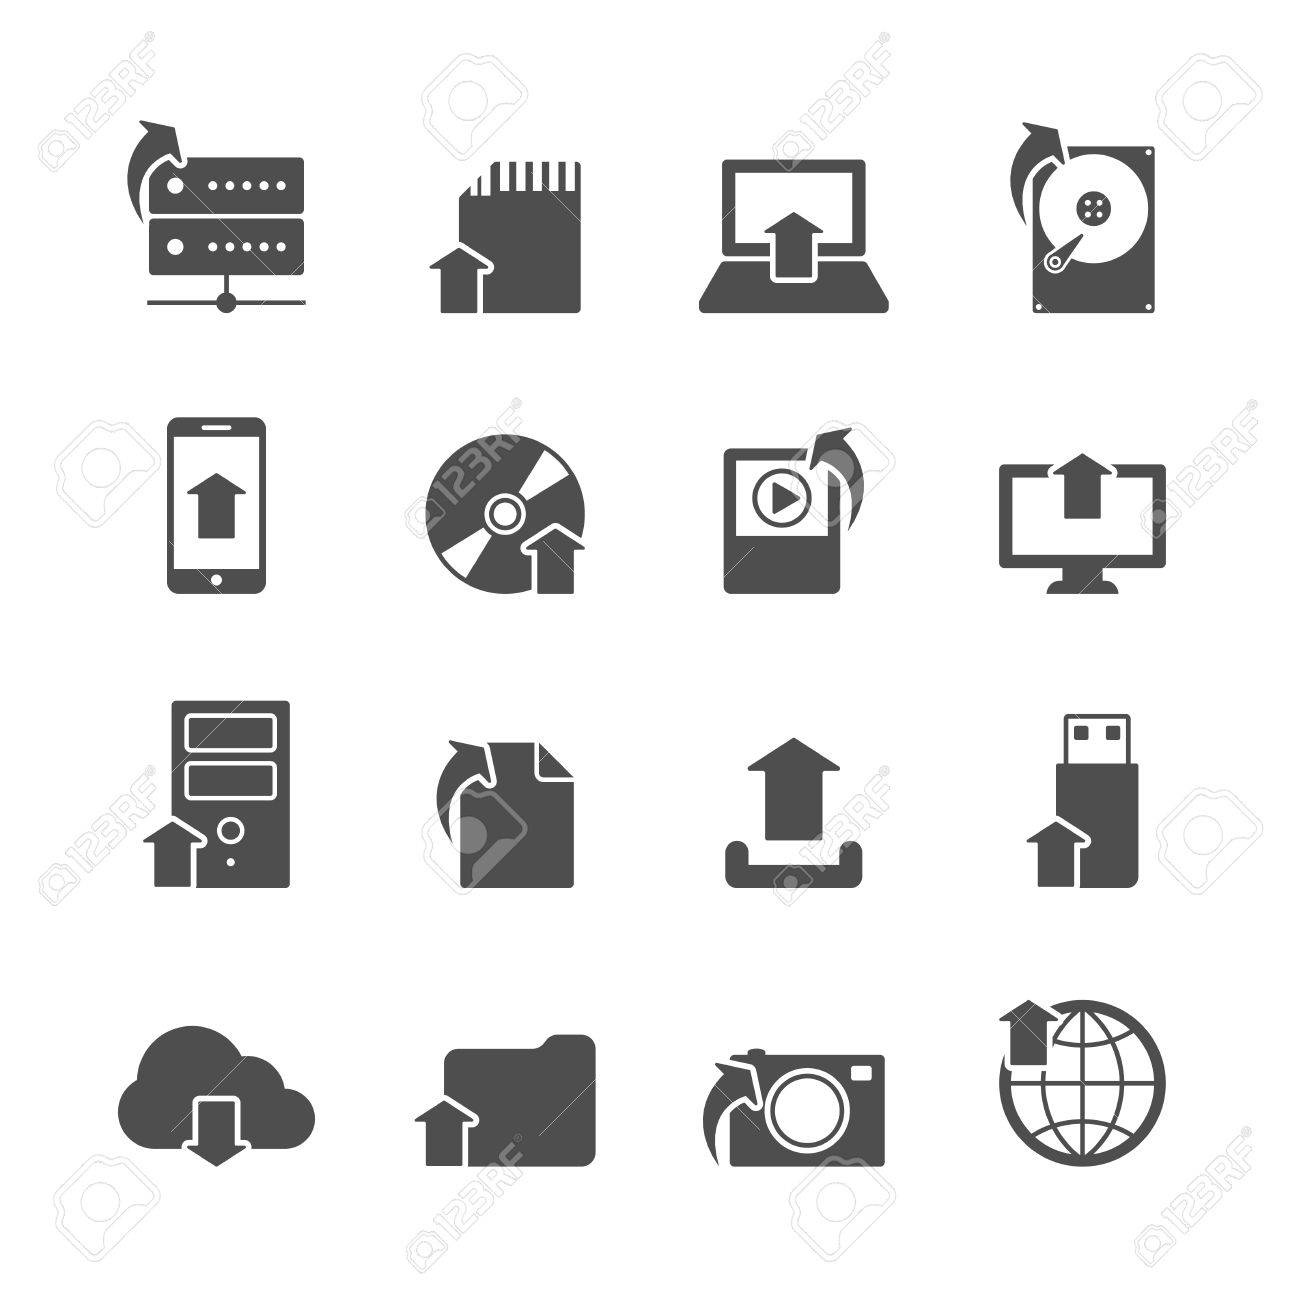 Internet Upload Symbols Collection For Computer And Mobile ...